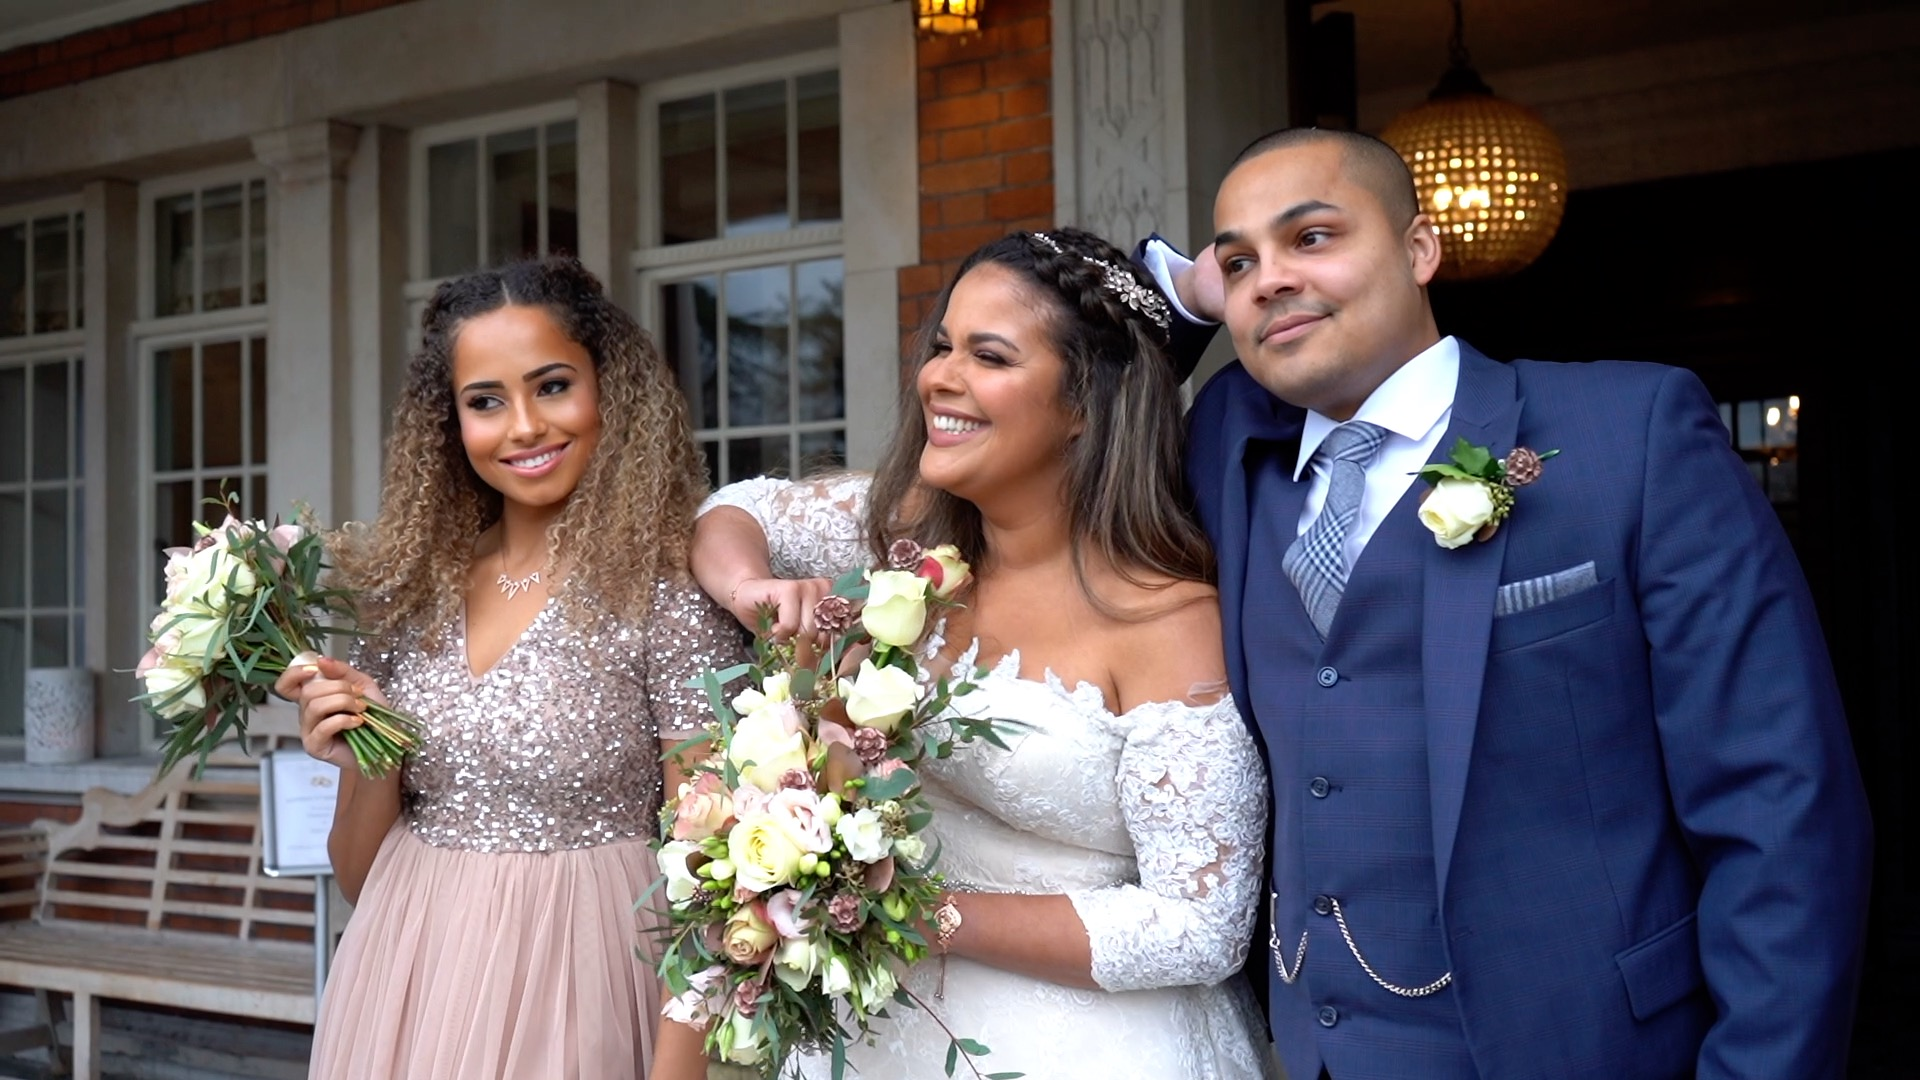 Amber Gill wedding videographer